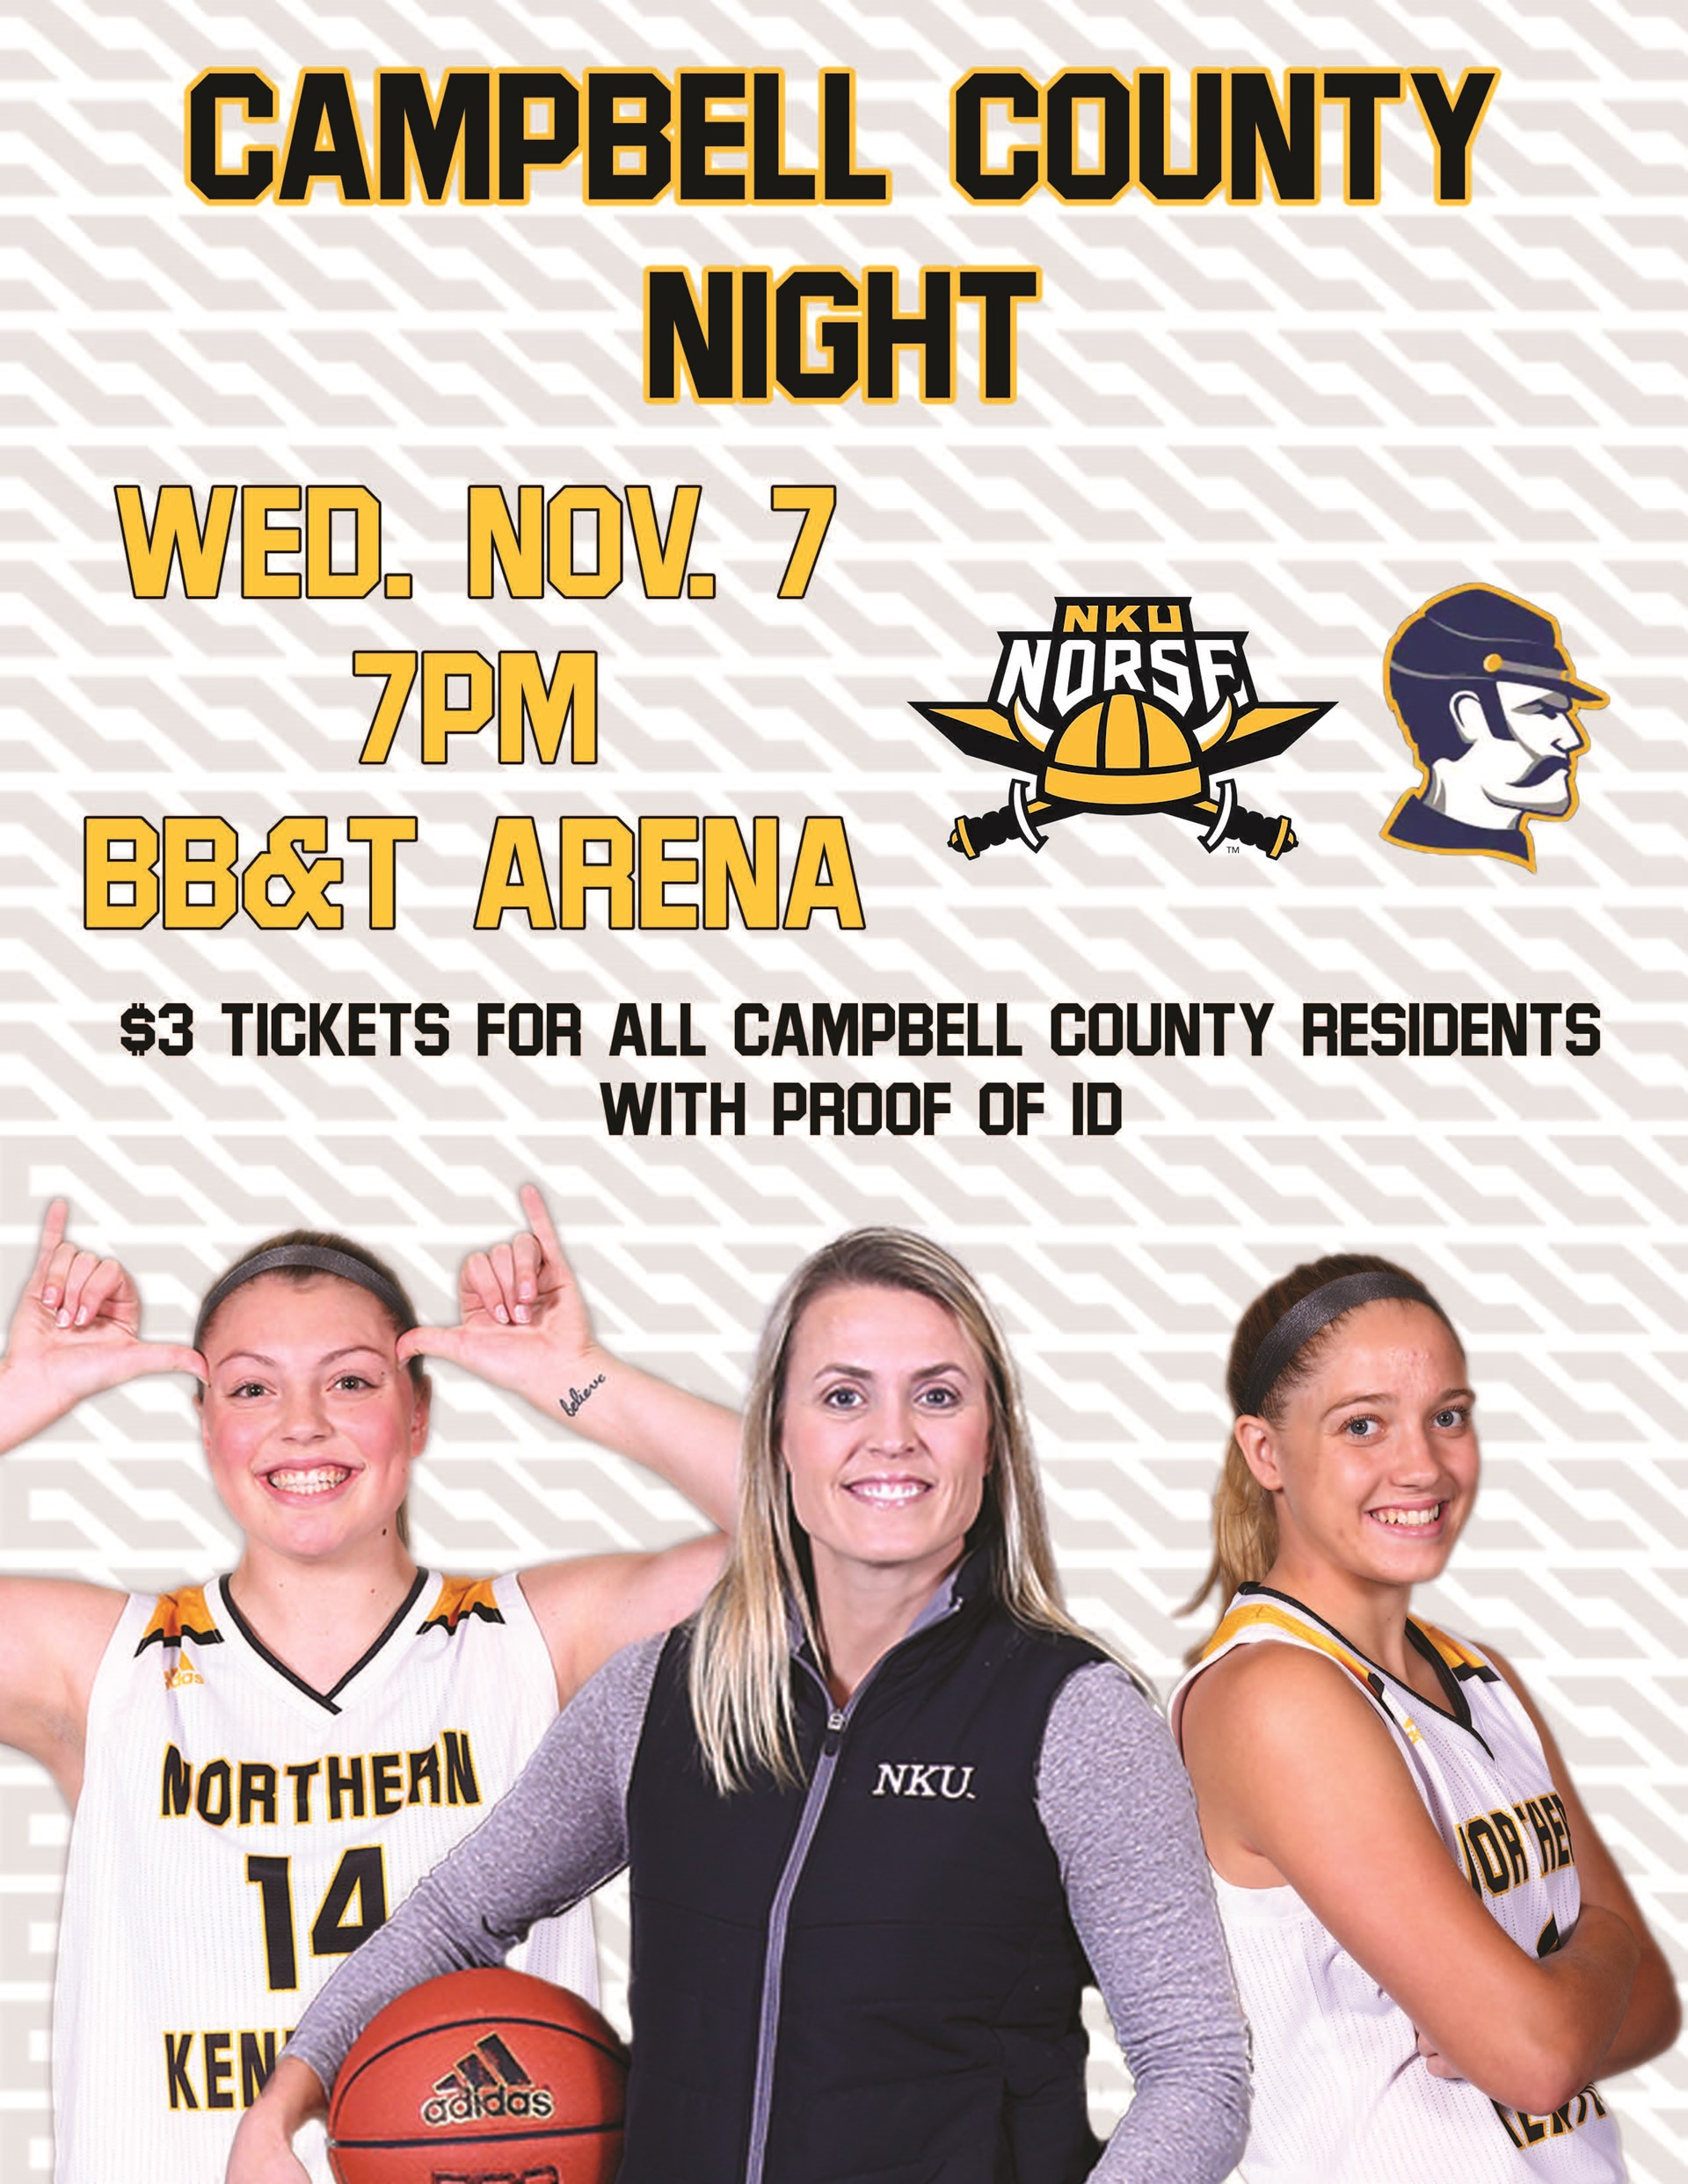 CC night at NKU